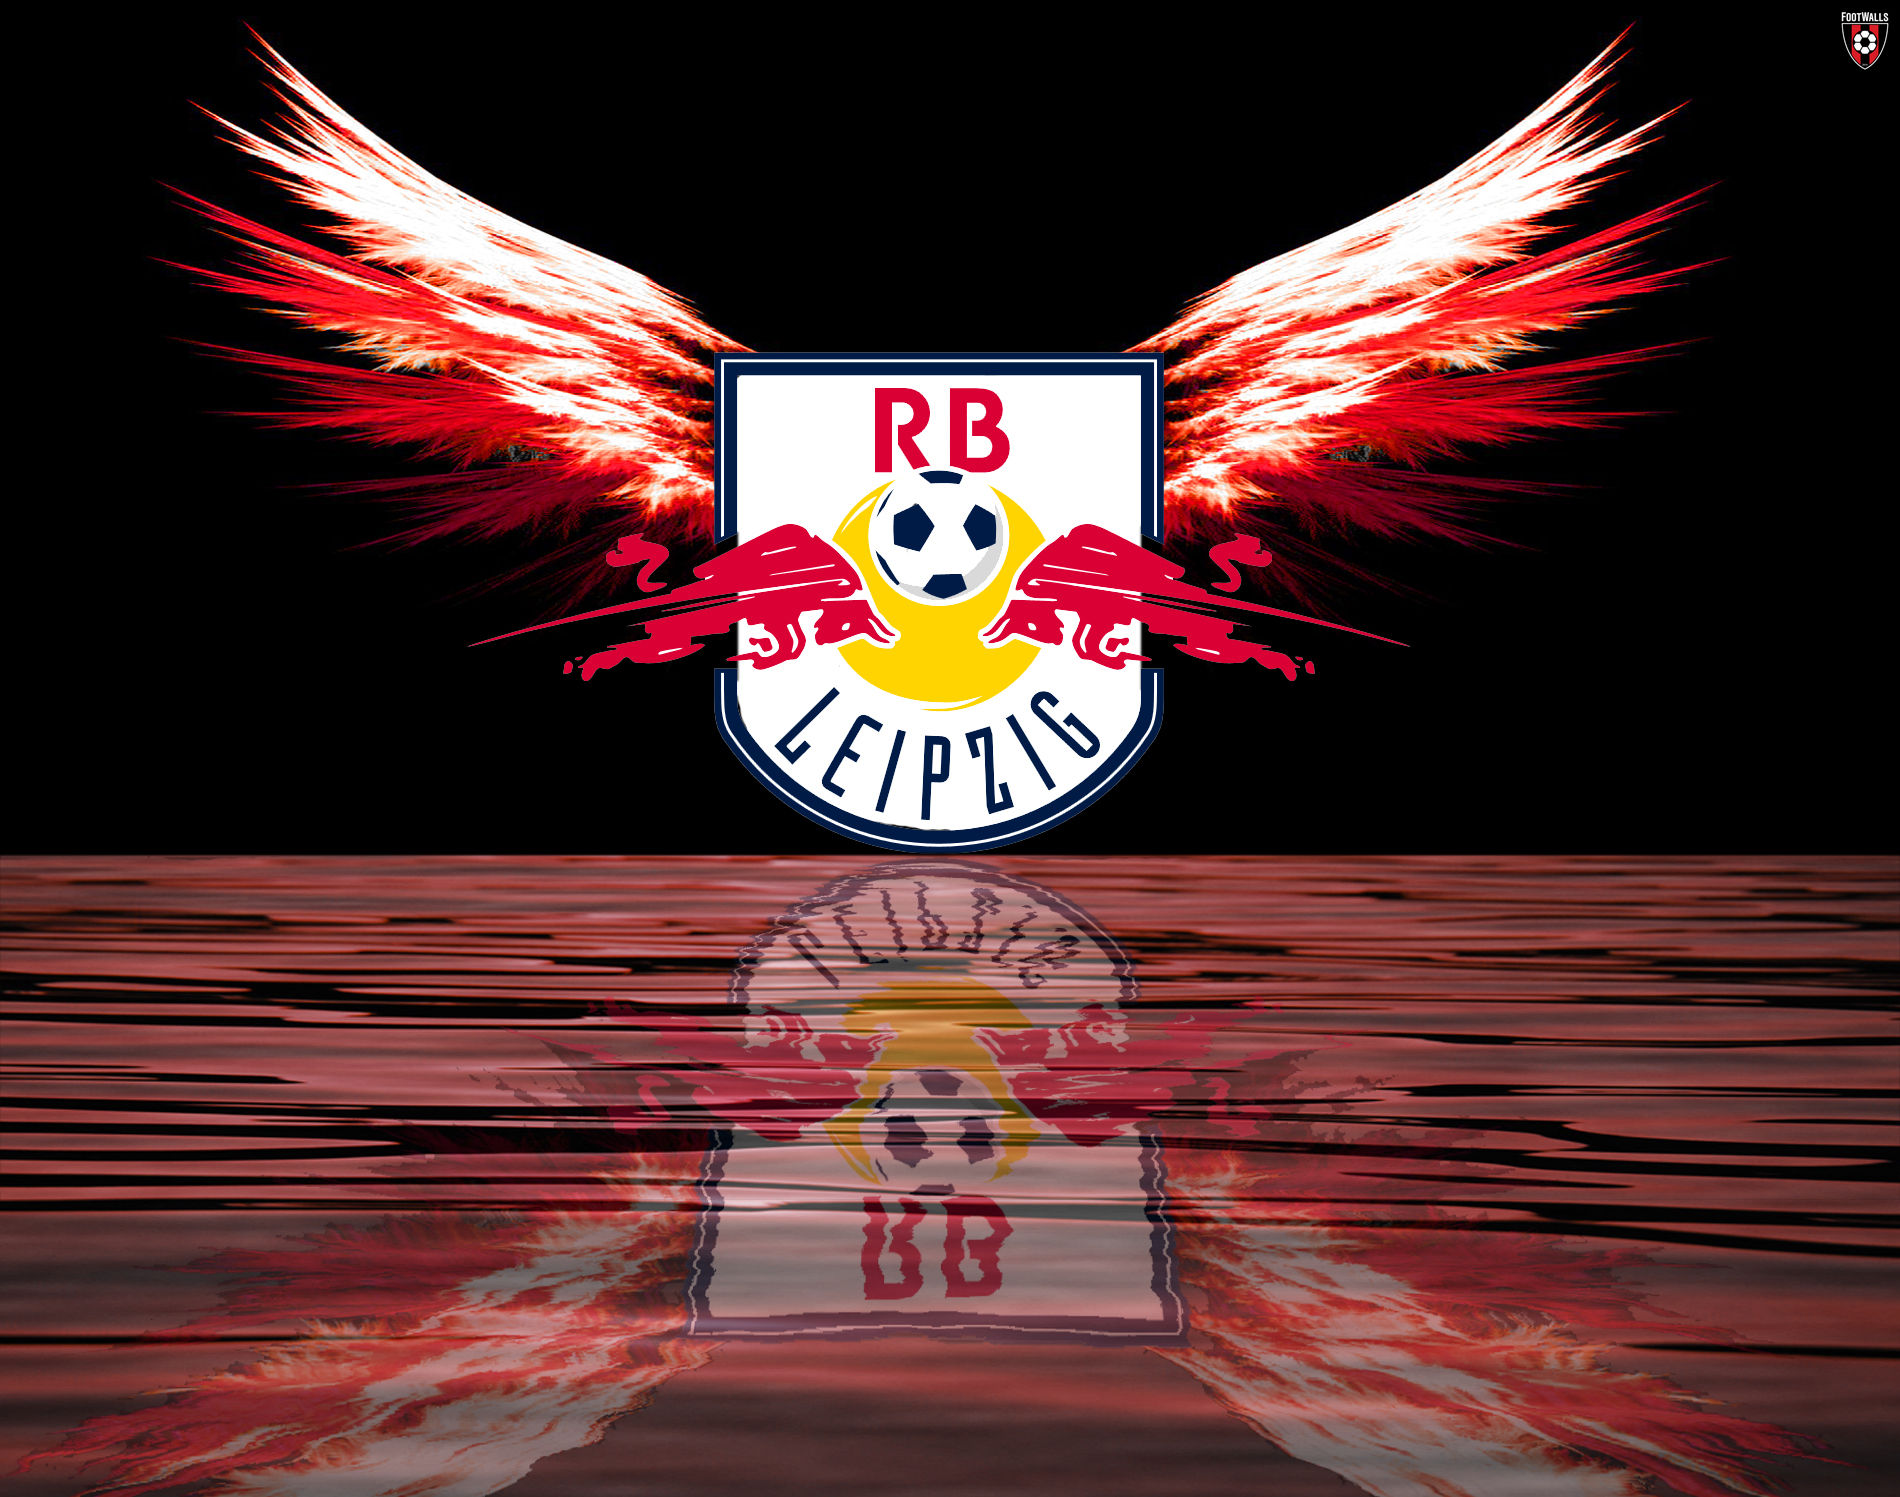 Rb Leipzig Wallpapers Posted By Samantha Thompson